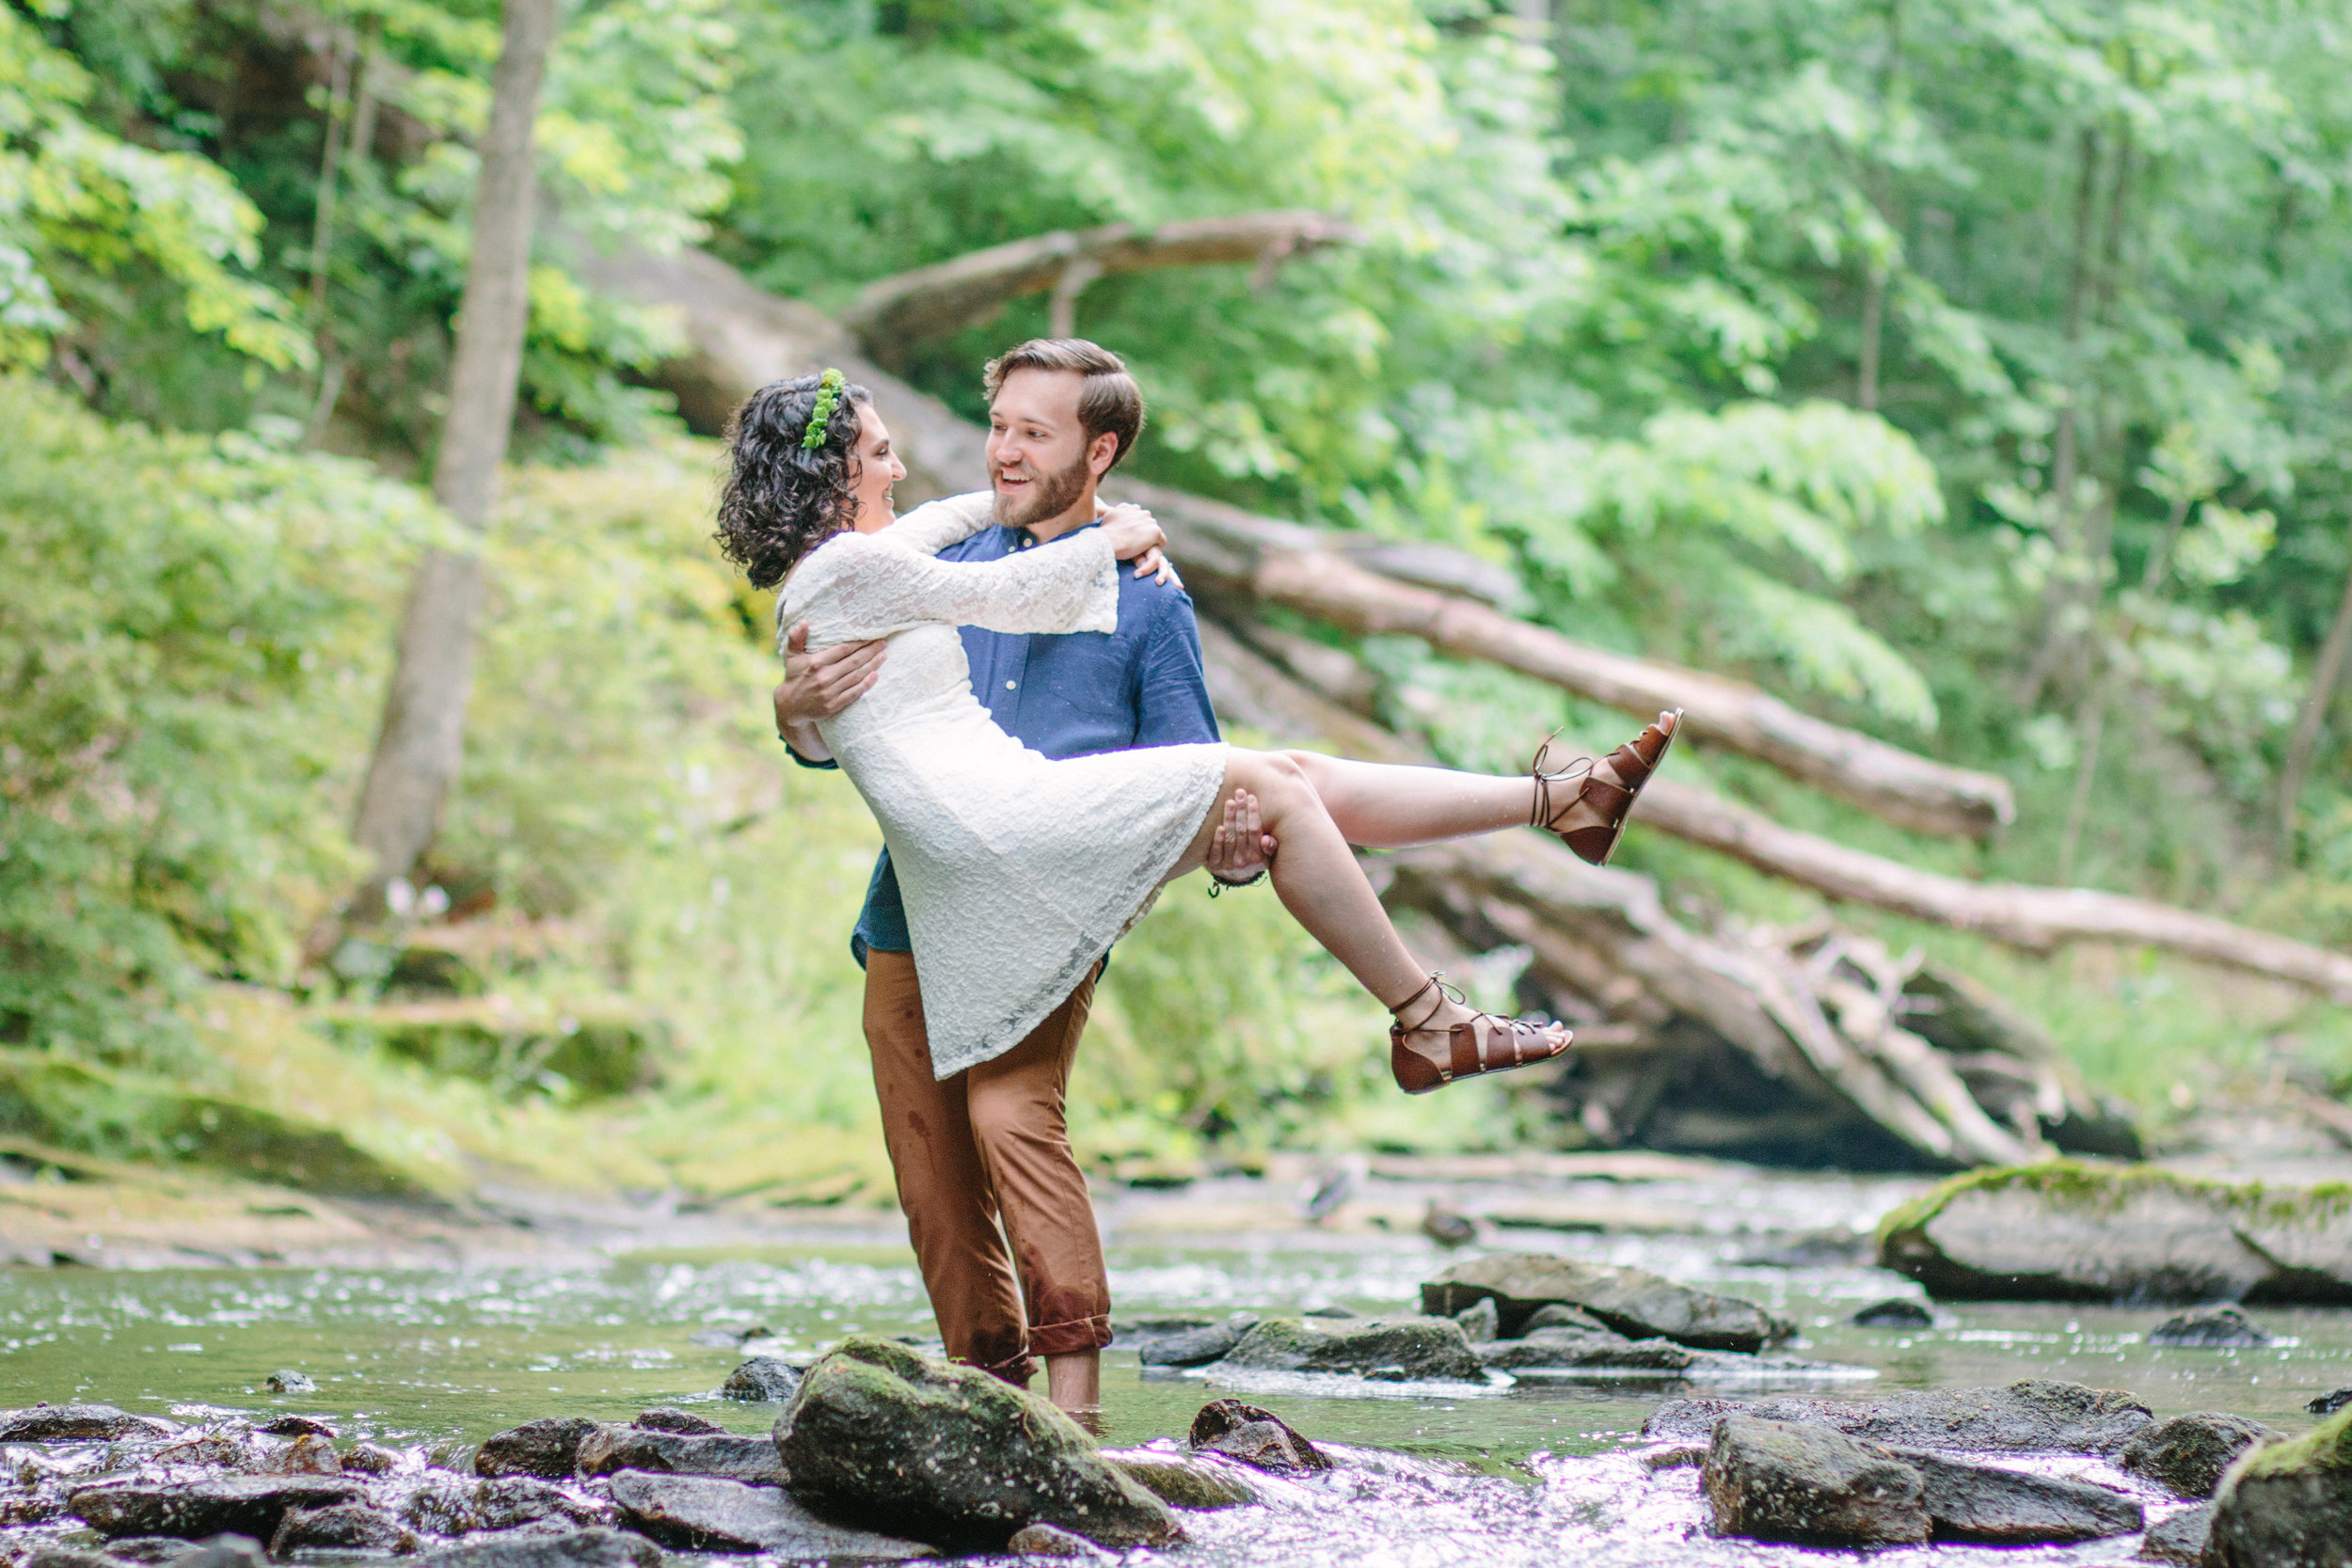 Michael and Marisa's Engagement Session by Youngstown Wedding Photographer Jessica Kae Photography in Mill Creek Park, Youngstown, OH